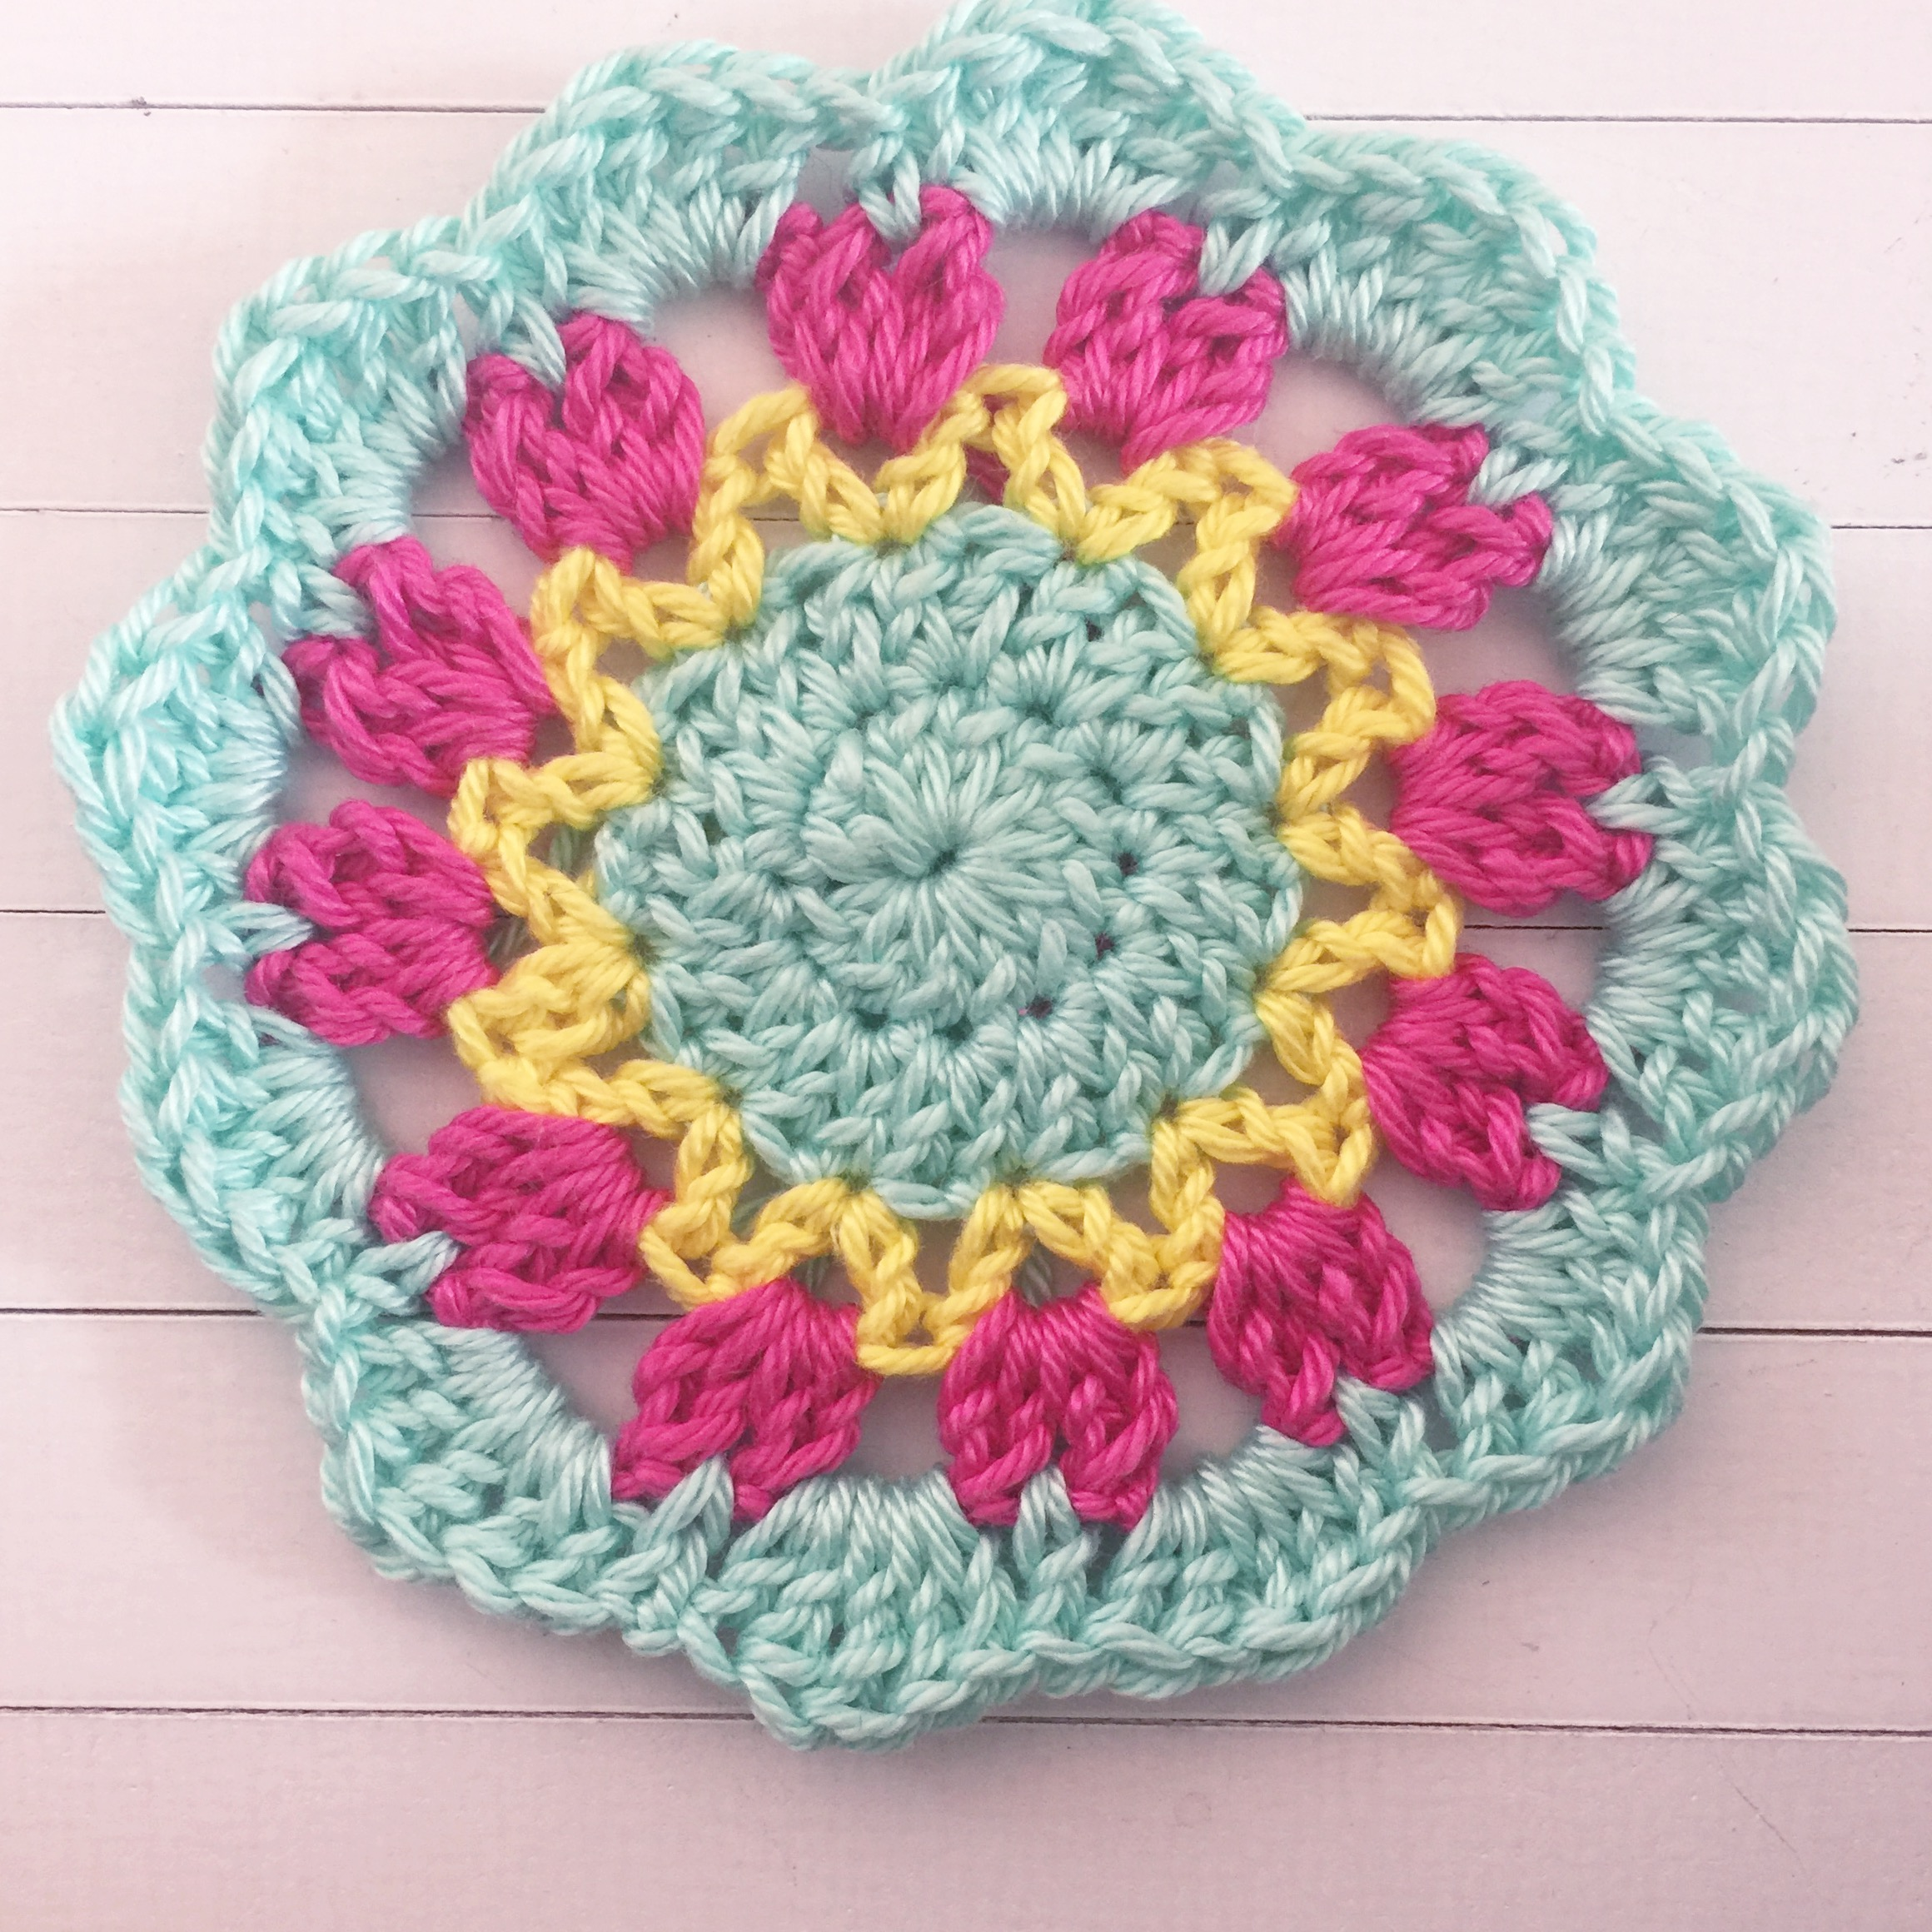 Join next colour to the middle loop of the cluster with a HDC (half double crochet). in the ch space, work a DC, Htr (half treble - YO twice, insert hook, pull up a loop, pull through two loops, YO, pull through all loops), a Tr (treble crochet), Htr and a DC. HDC into the top loop of the next cluster. Repeat this around in each ch space, slip stitch to join.